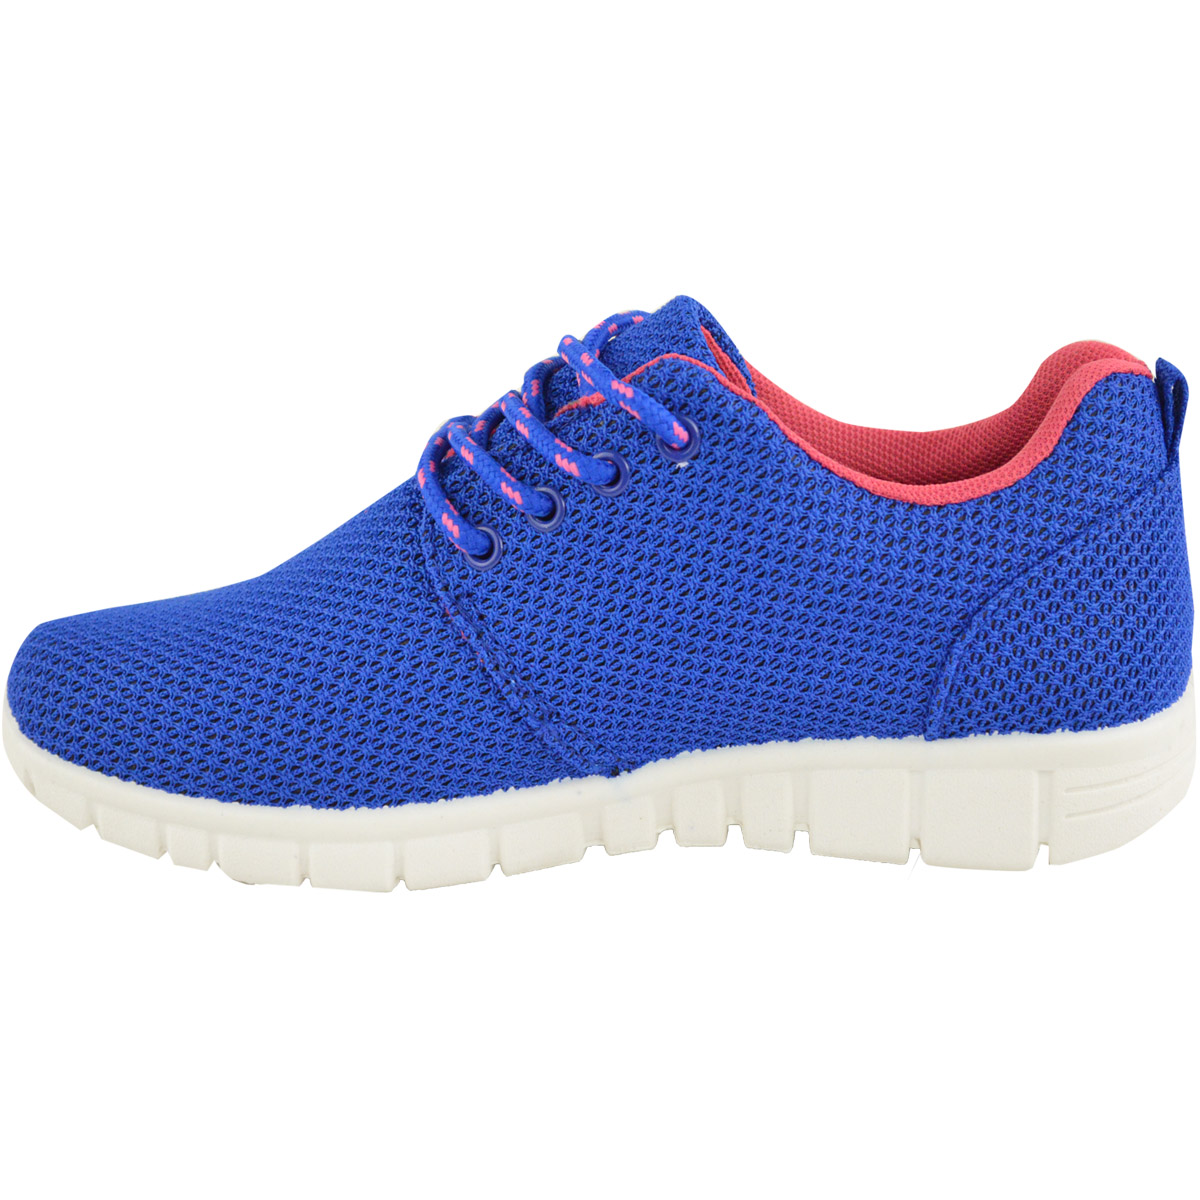 Find great deals on eBay for Womens Mesh Shoes in Athletic Shoes for Women. Shop with confidence.